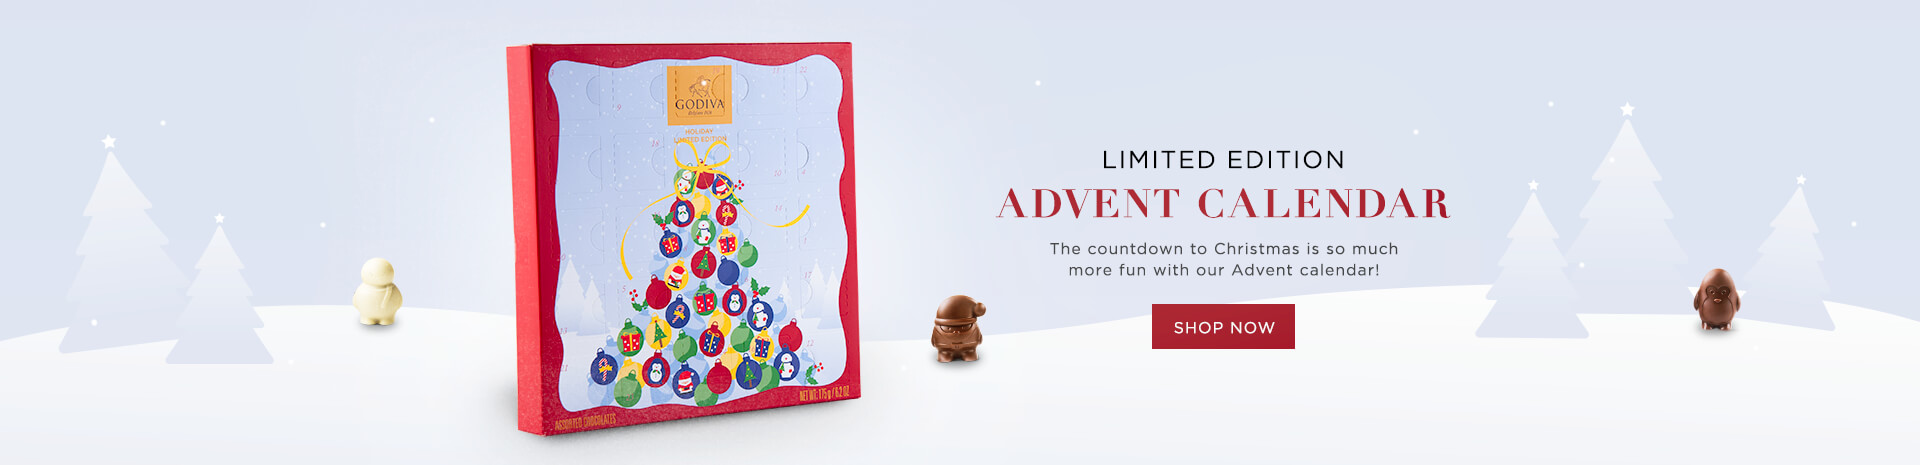 Godiva Limited Edition Advent Calendar